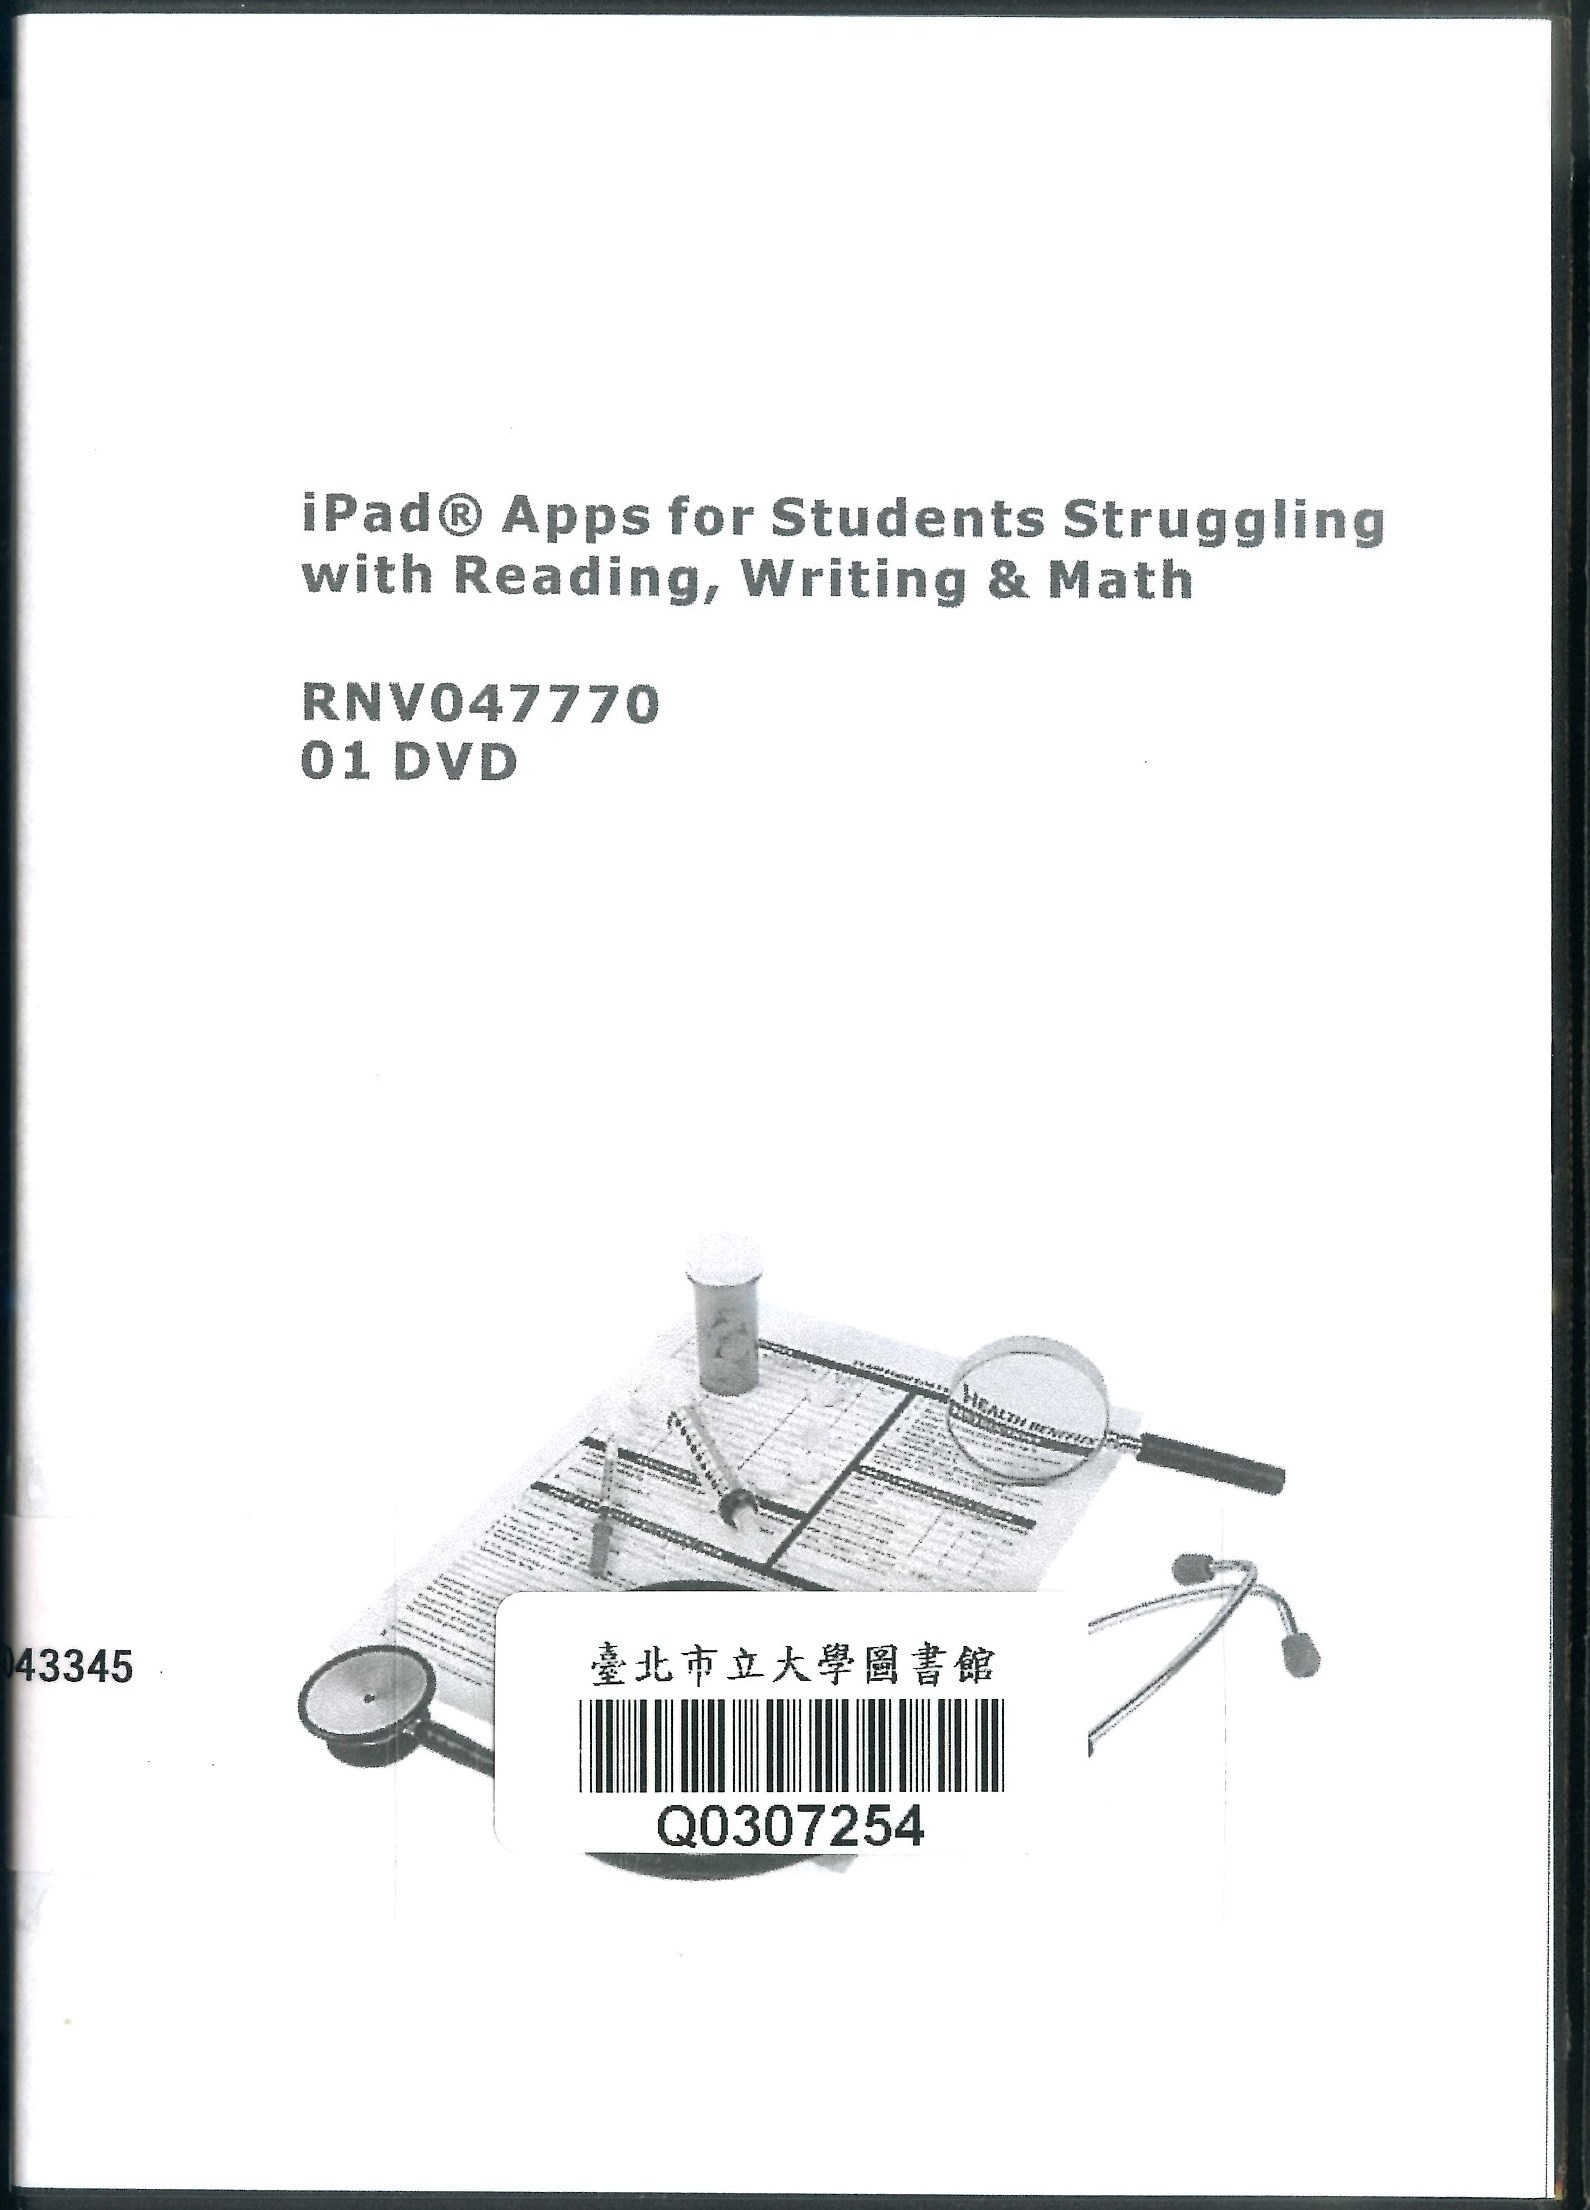 iPad apps for students struggling with reading, writing & math 運用ipad apps改進學生說、讀、寫與數學學習 /